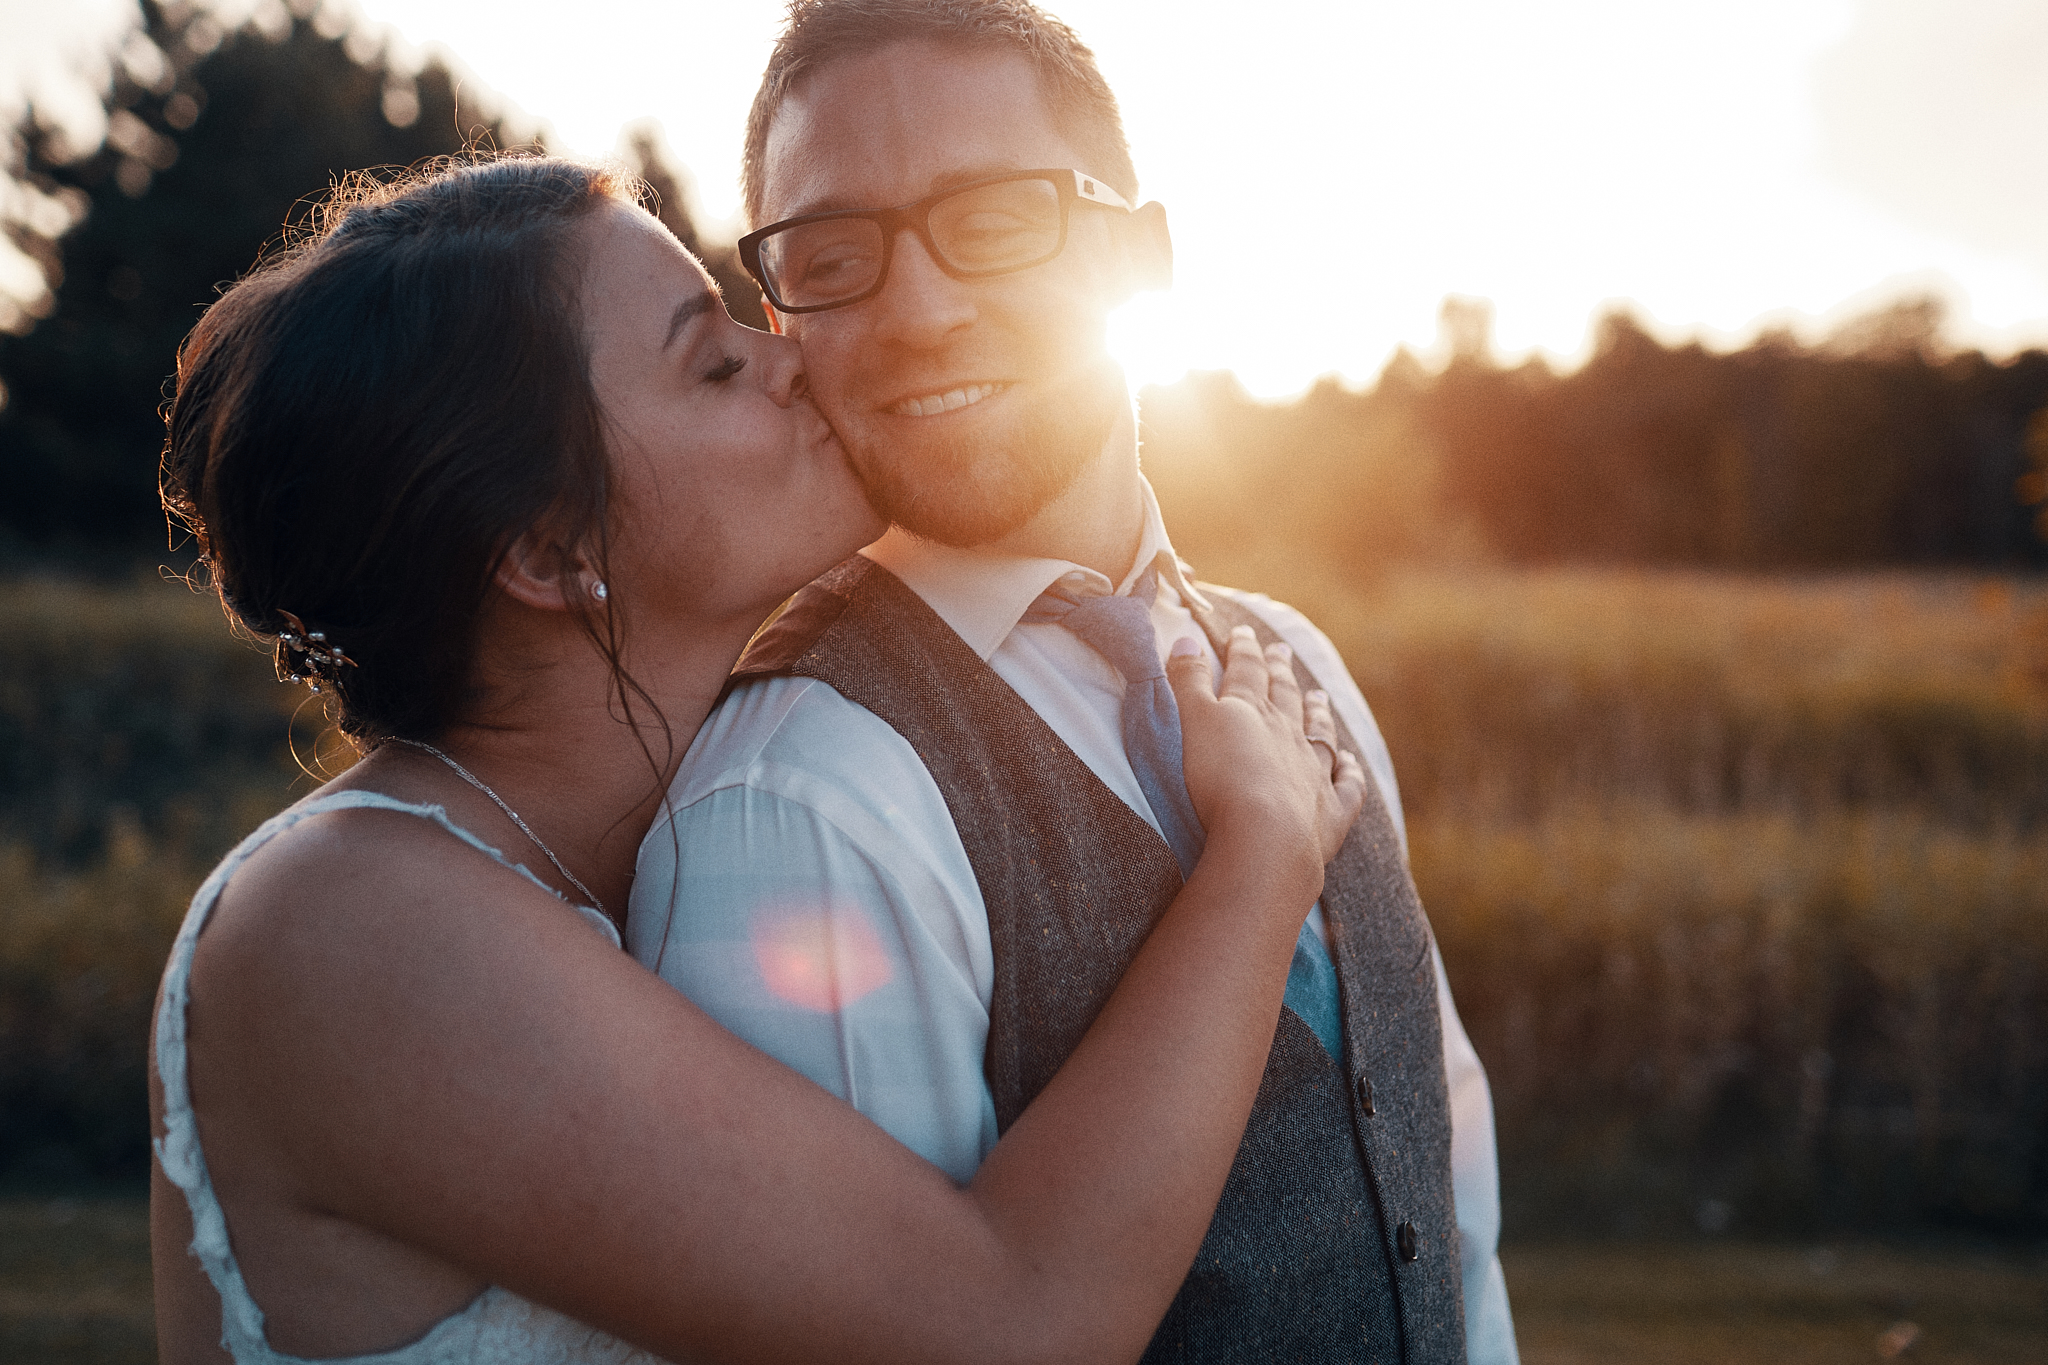 Under_The_Sun_Golden_Hour_Couple_High_End_Minneapolis_Brand_Photographer_Something_Candid_048.JPG